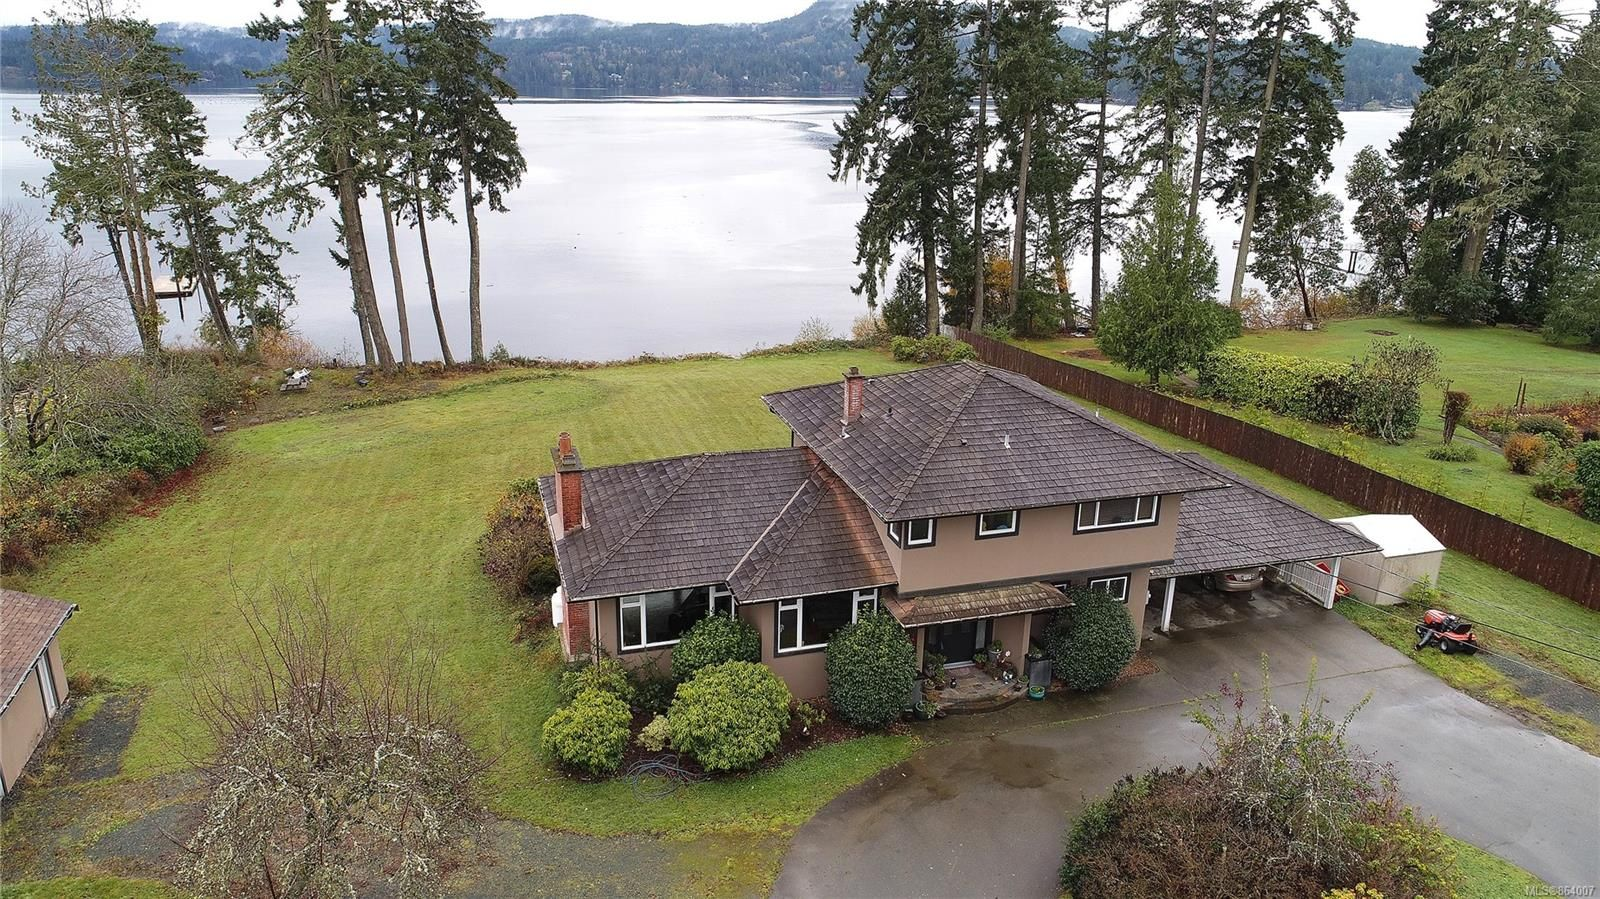 Photo 32: Photos: 5697 Sooke Rd in : Sk Saseenos House for sale (Sooke)  : MLS®# 864007